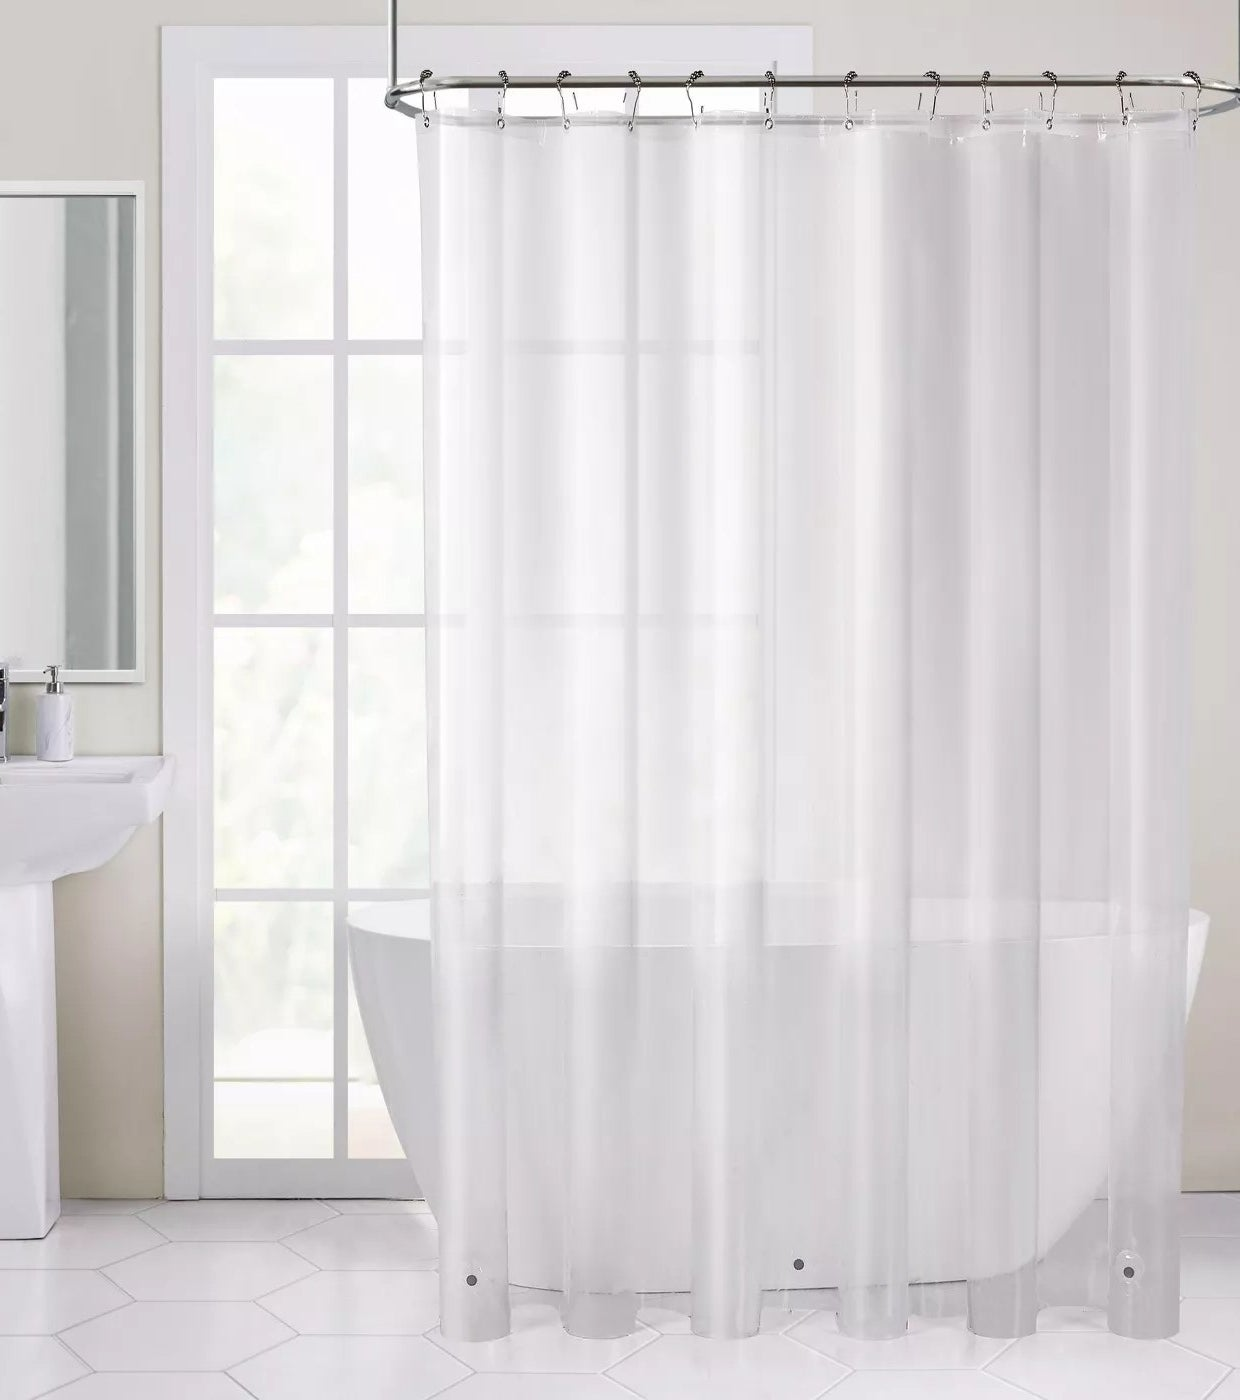 The curtain liner